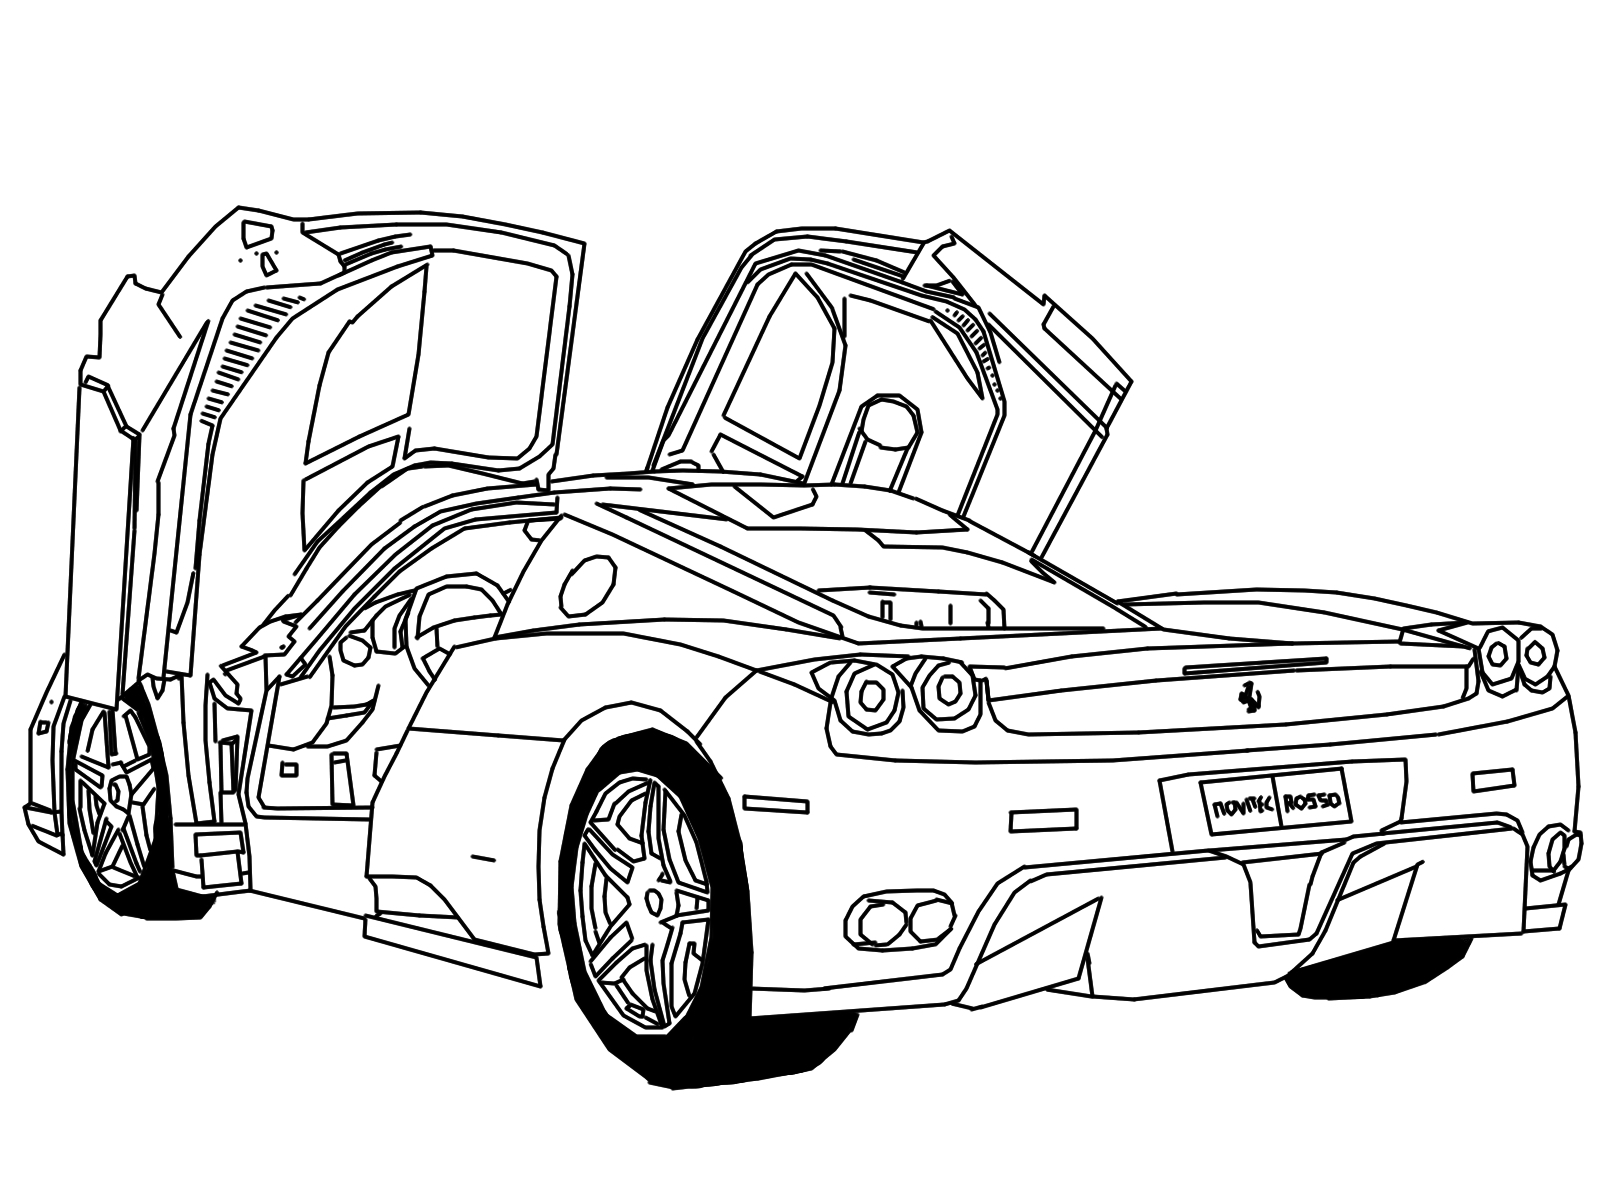 car drawing for coloring free printable car coloring pages for kids  art hearty drawing coloring for car